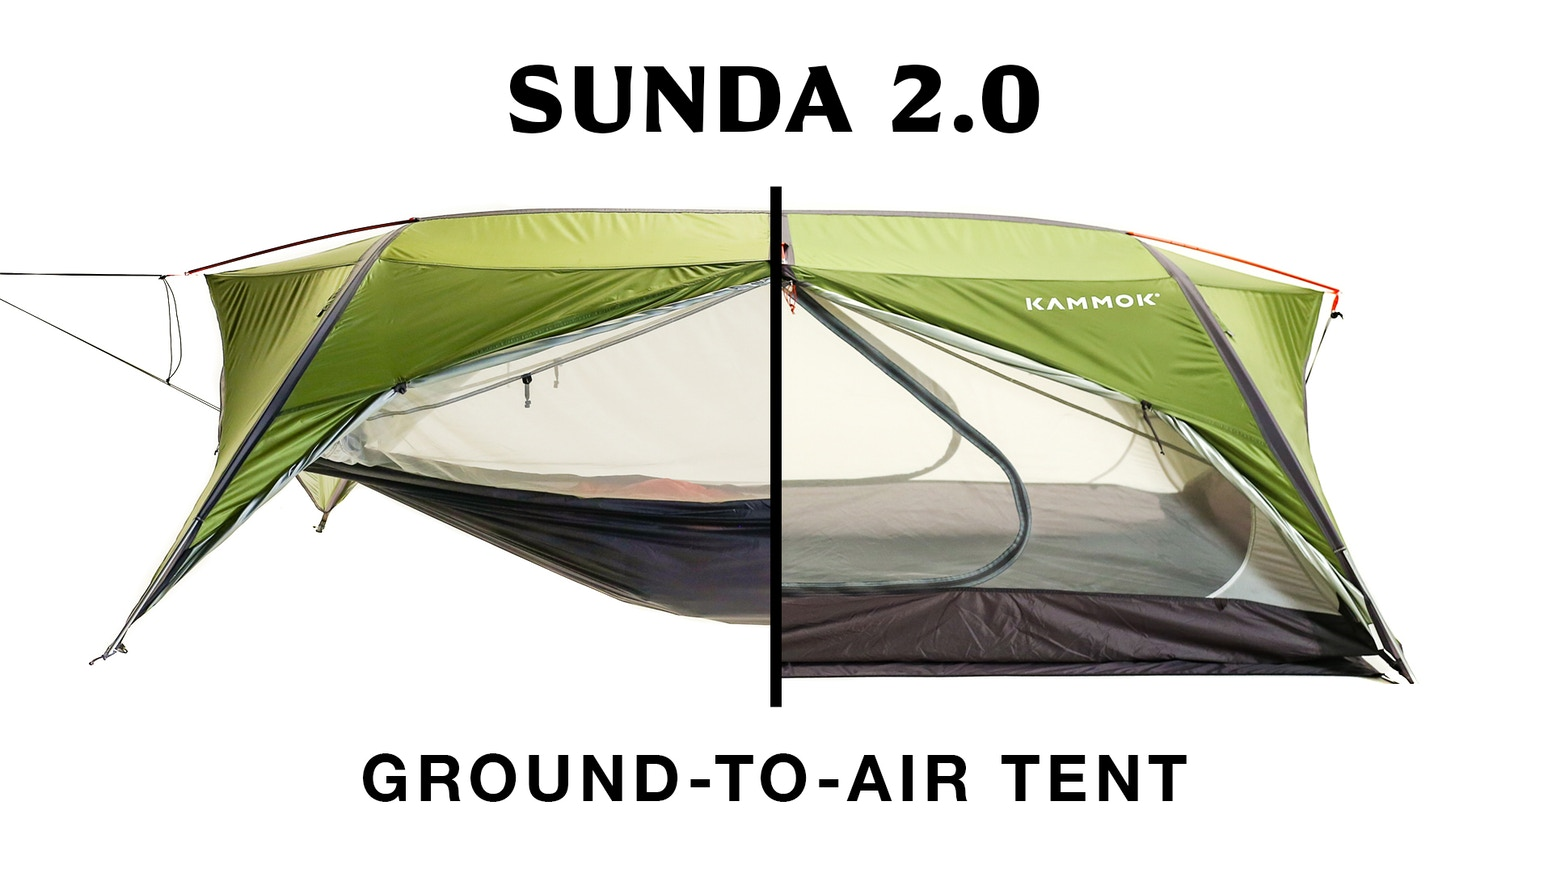 An innovative tent that adapts to any terrain. Incredibly versatile and easy to use, you're equipped to camp on the ground or in air.